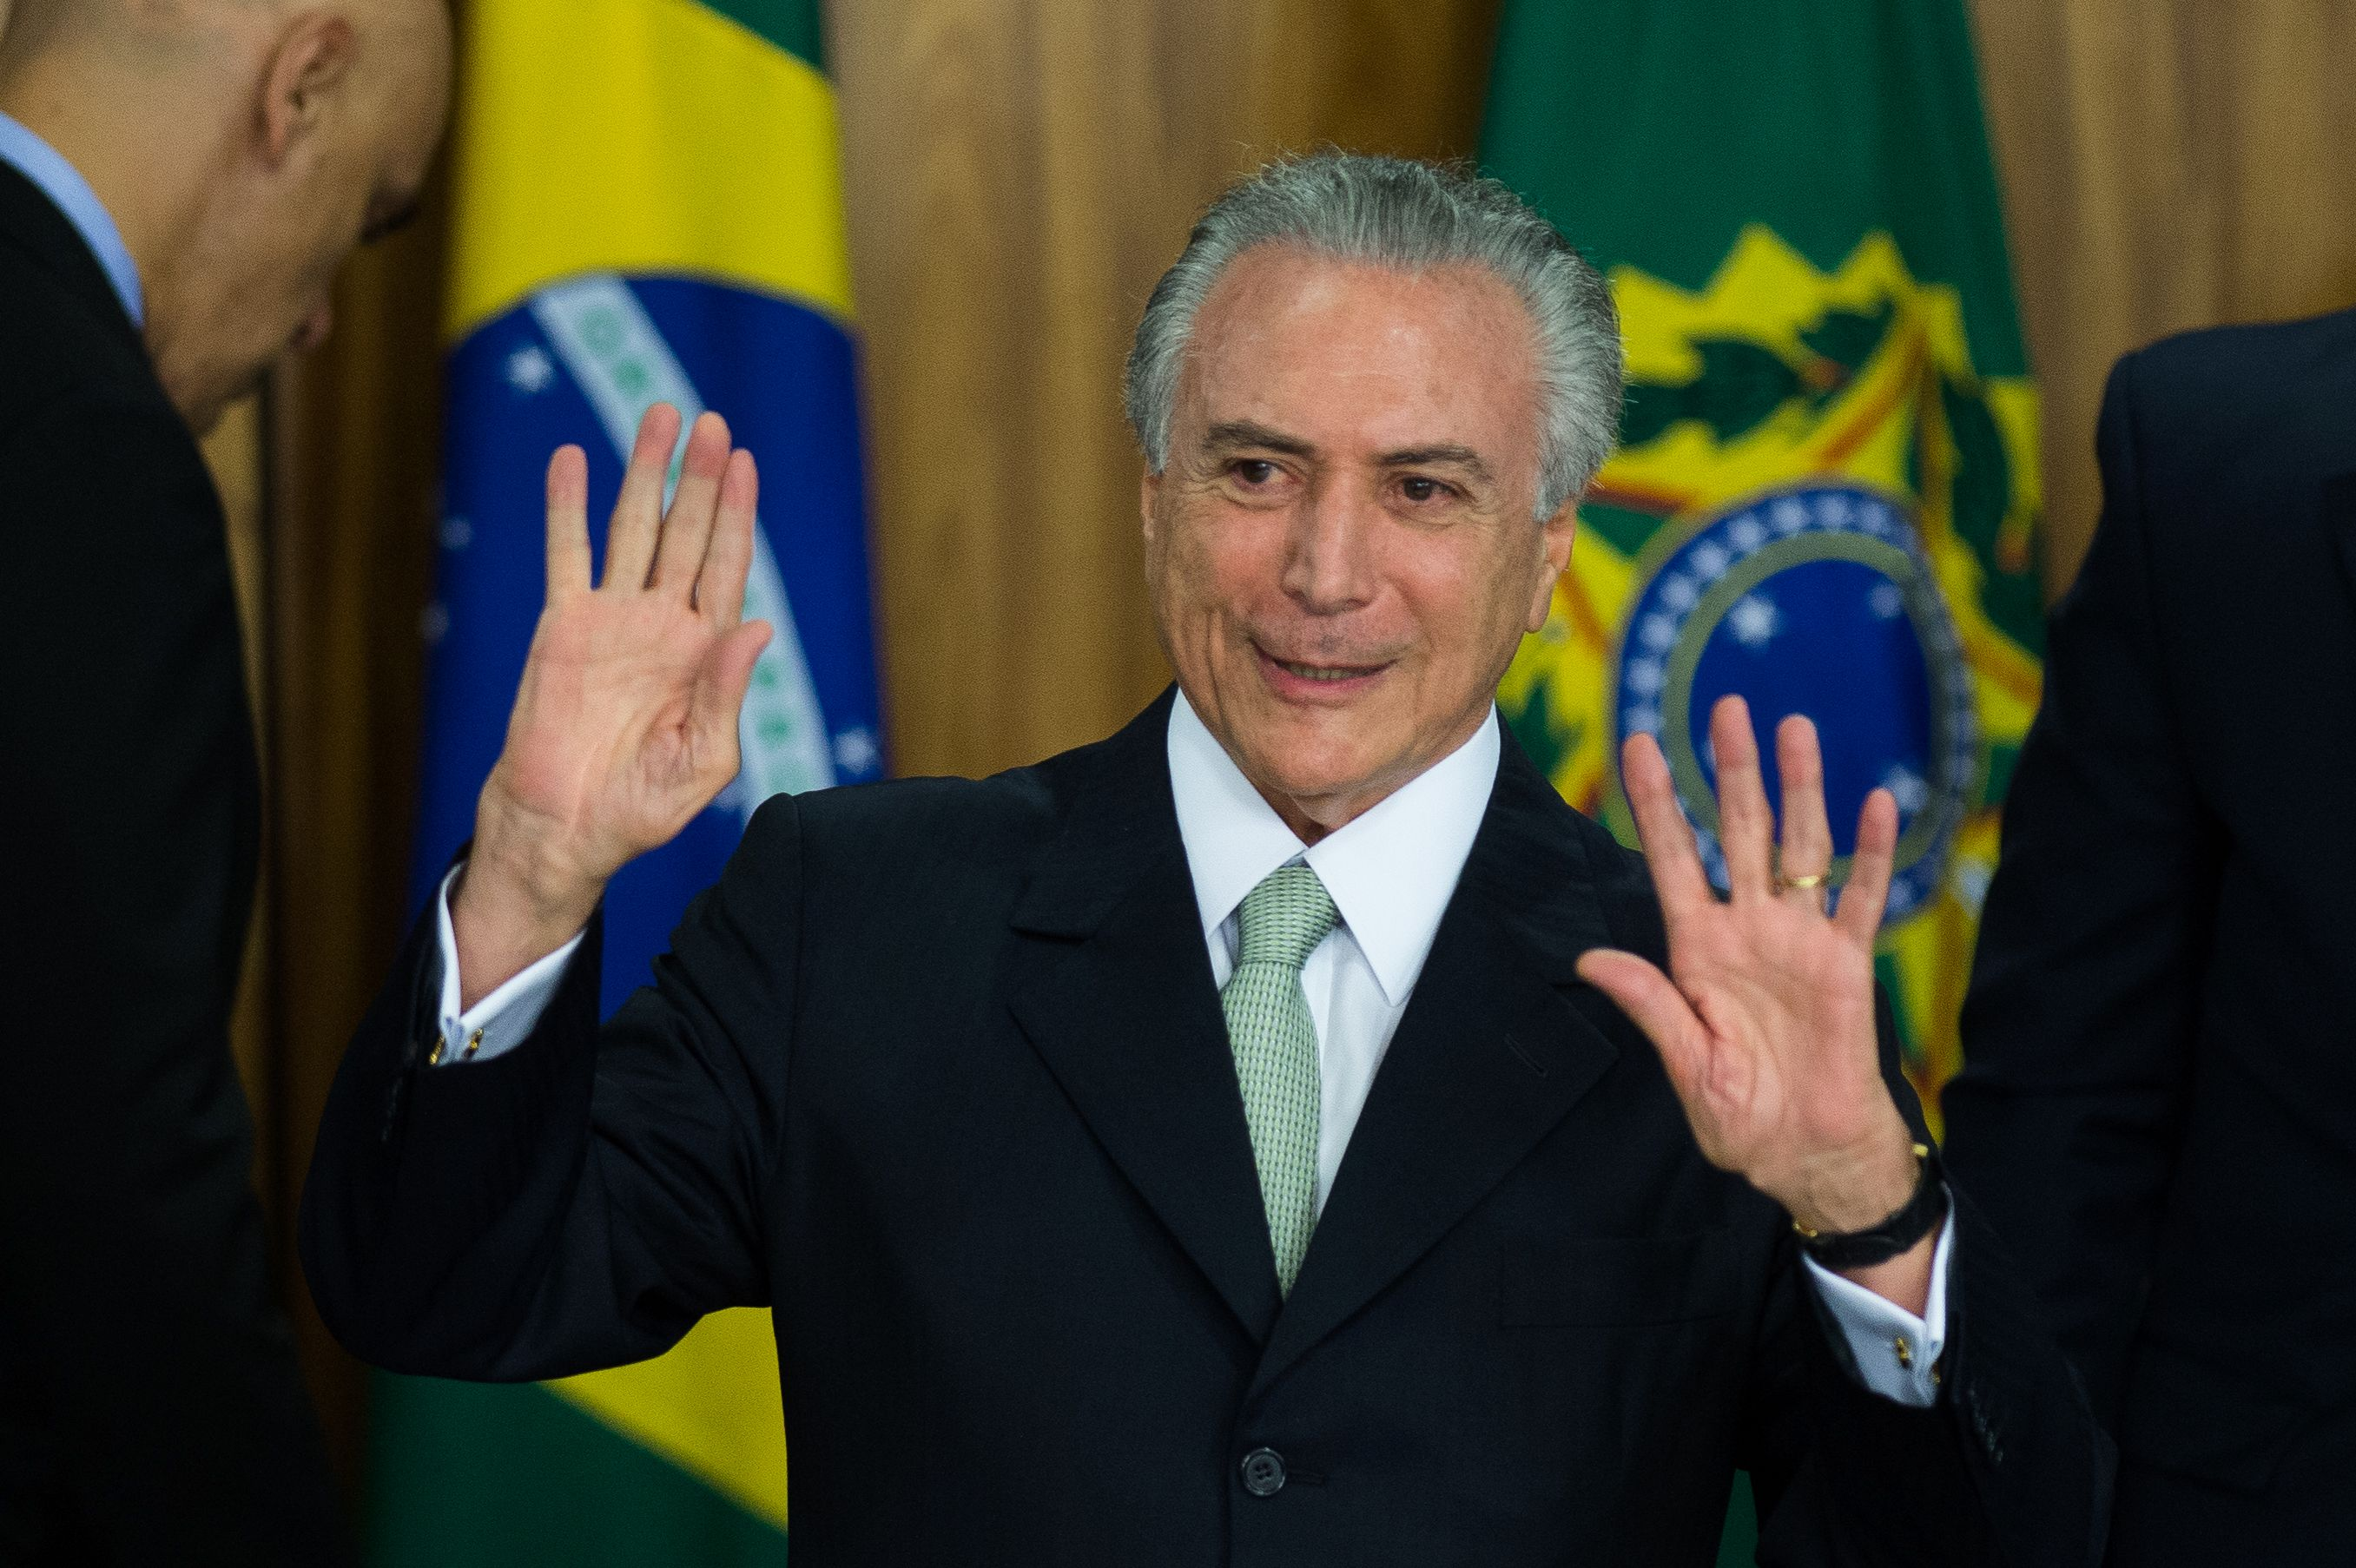 Brazilian acting president Michel Temer gestures during his new ministers' inauguration ceremony at Planalto palace in Brasilia, on May 12, 2016. Temer said Thursday his new cabinet must work to restore the country's